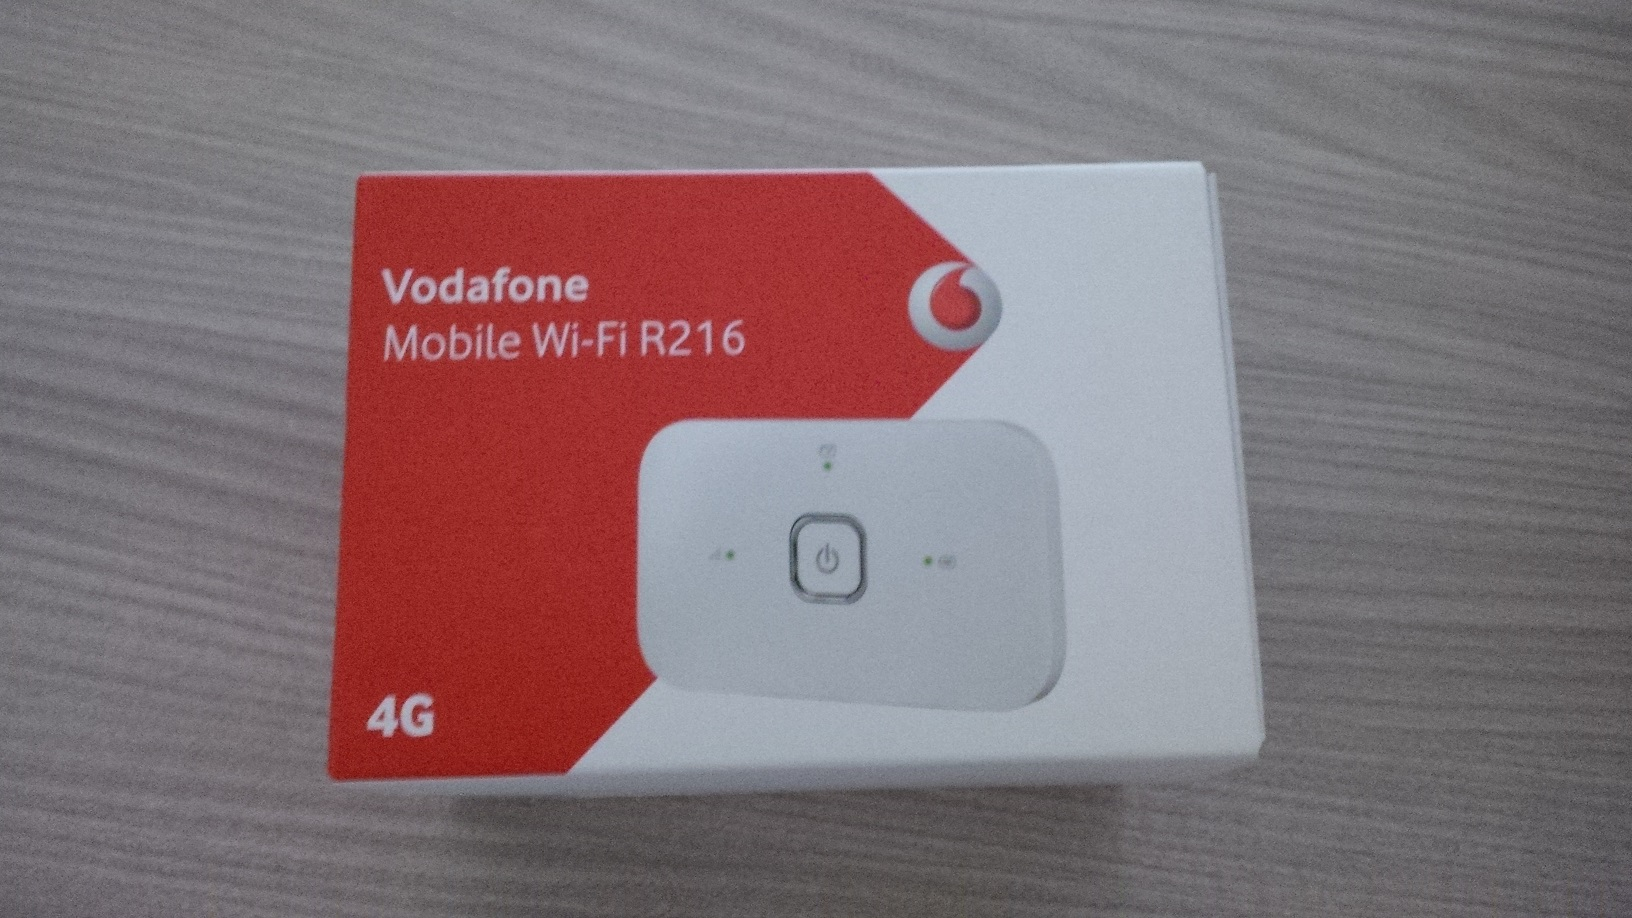 vodafone mobile wi fi r216 pocket router lte 4g wi fi ebay. Black Bedroom Furniture Sets. Home Design Ideas